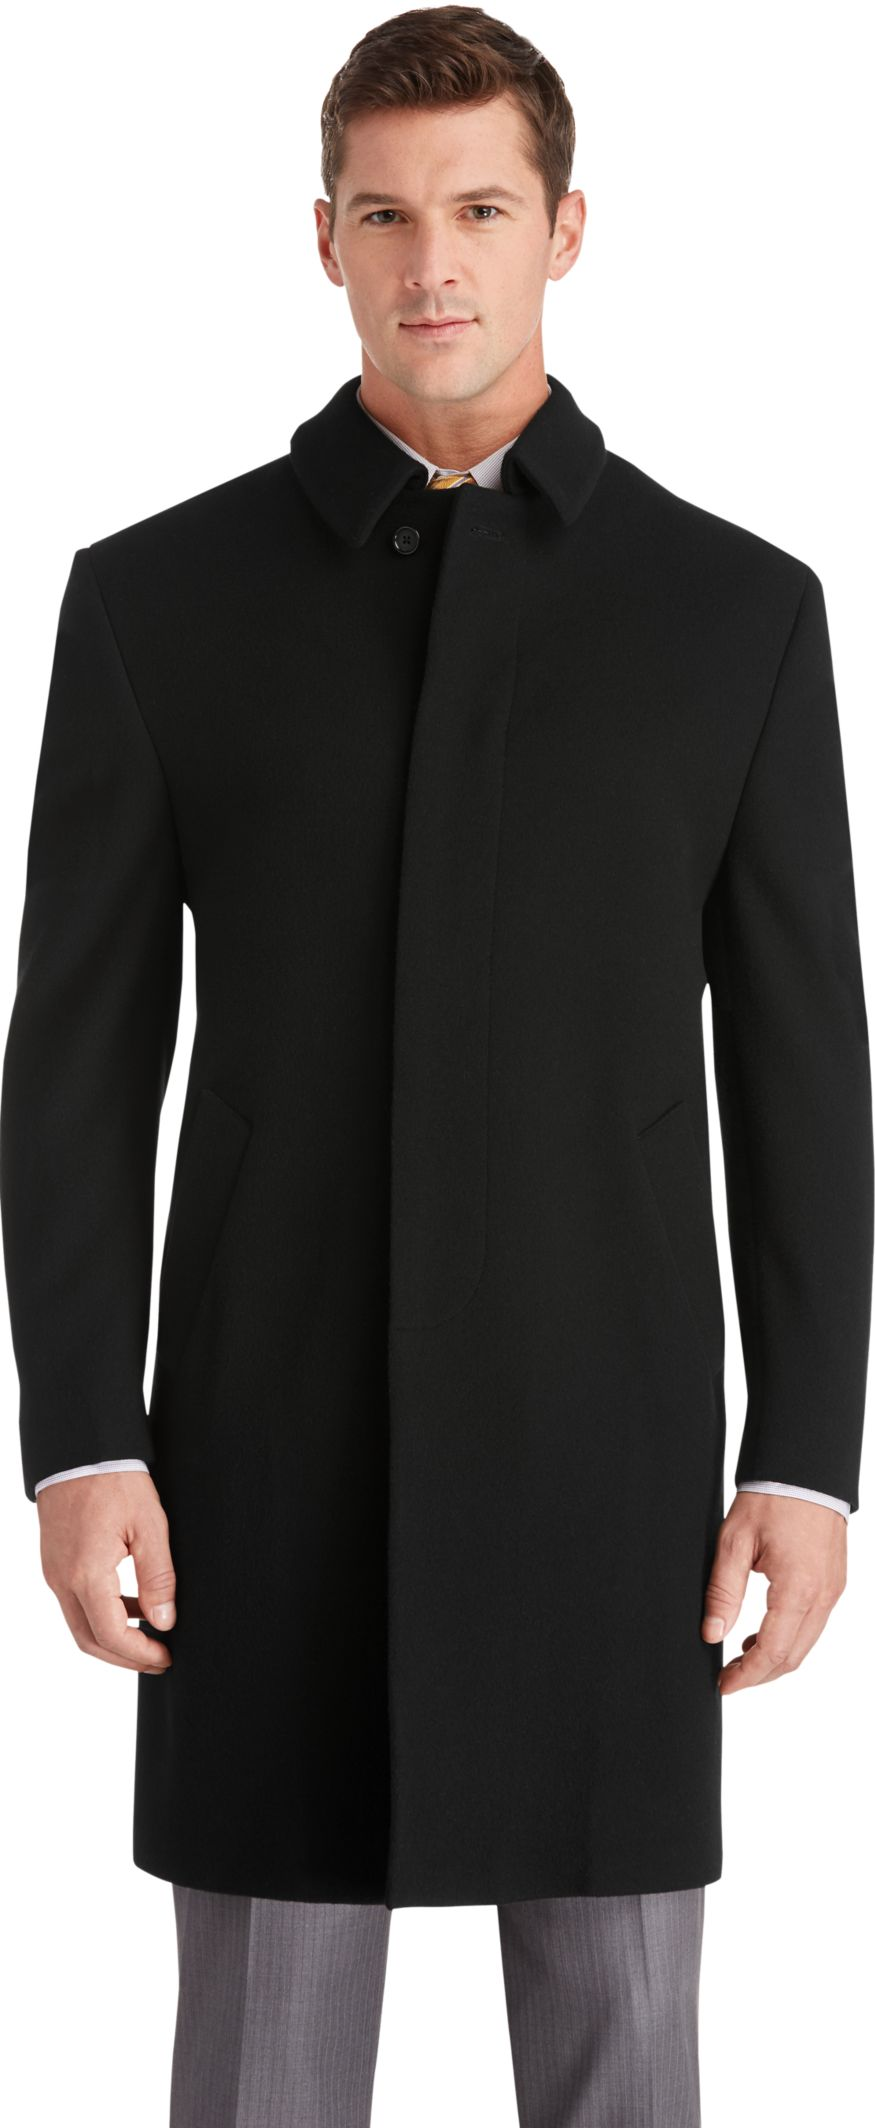 Wool Coat Clearance - results from brands JH Design, Calvin Klein, Stafford, products like Men's Irvine Park Wool Car Coat by Blair, Brown, Size S R, Men's Irvine Park Wool Car Coat by Blair, Brown, Size L TL, Jos A Bank Traveler Collection Tailored Fit Sharkskin Plaid Men's Suit CLEARANCE .